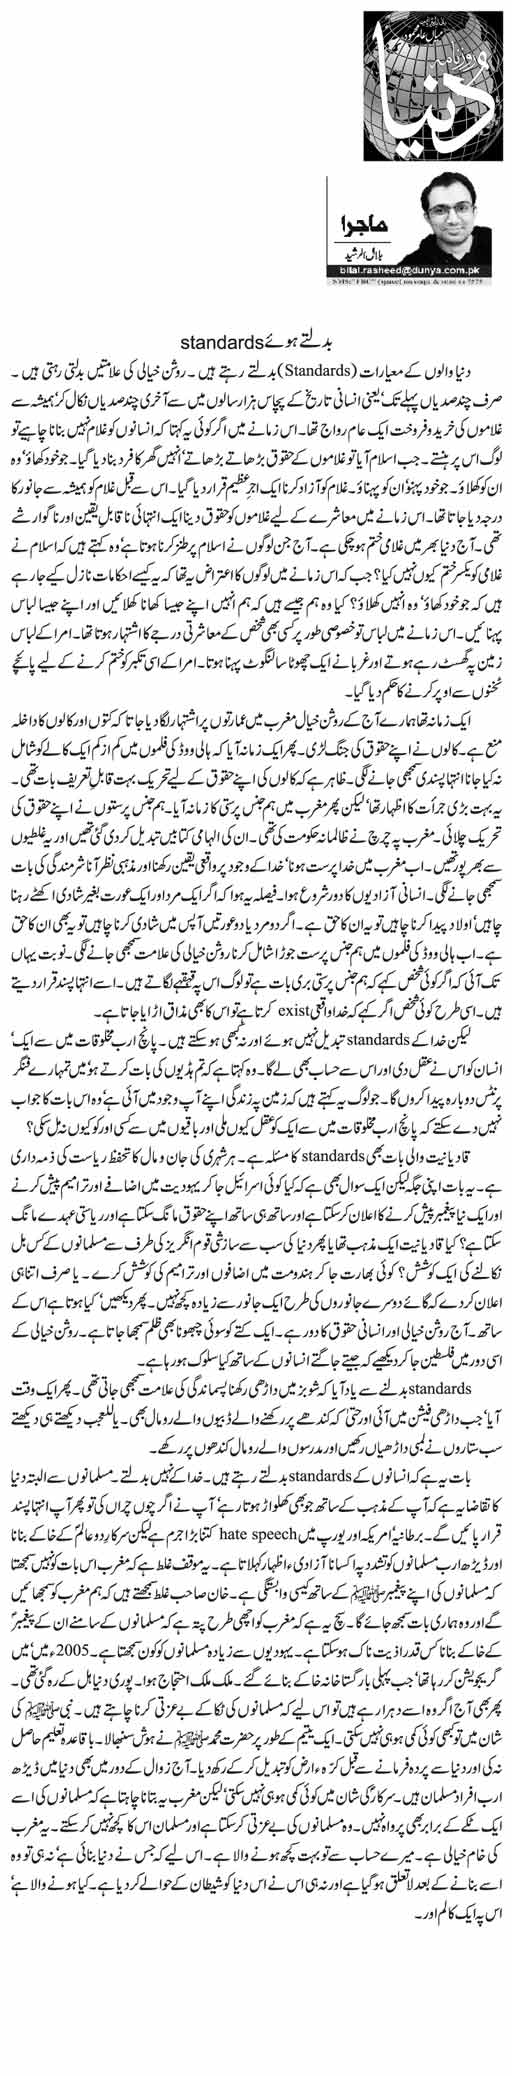 Badalte Hue Standards | Bilal Ur Rasheed | Daily Urdu Columns